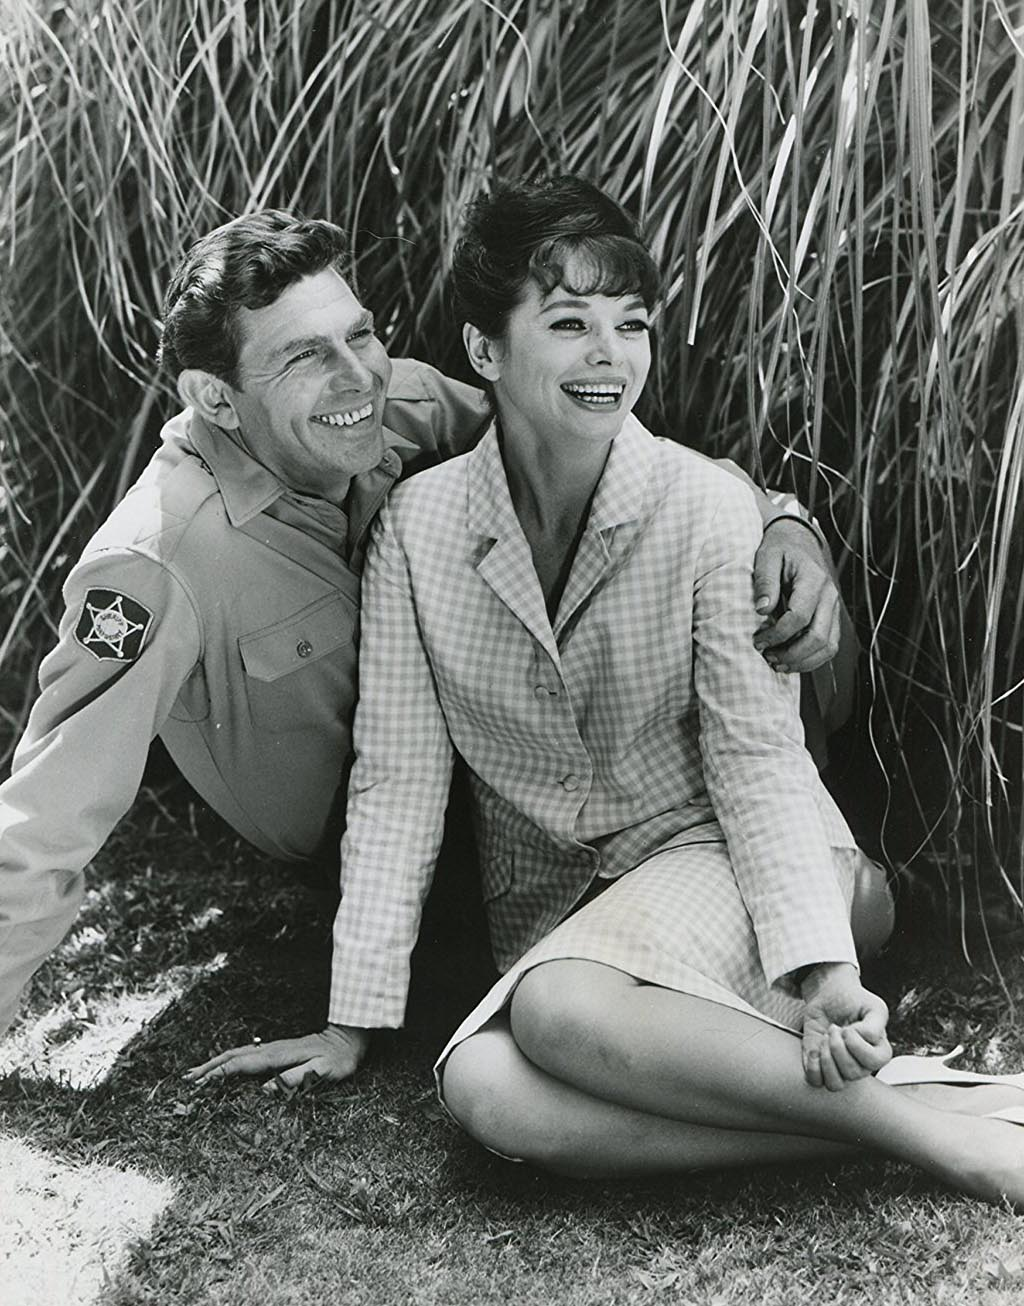 Actors Andy Griffith and Aneta Cordsaut had an affair despite Andy being married for over 15 years with 2 children!